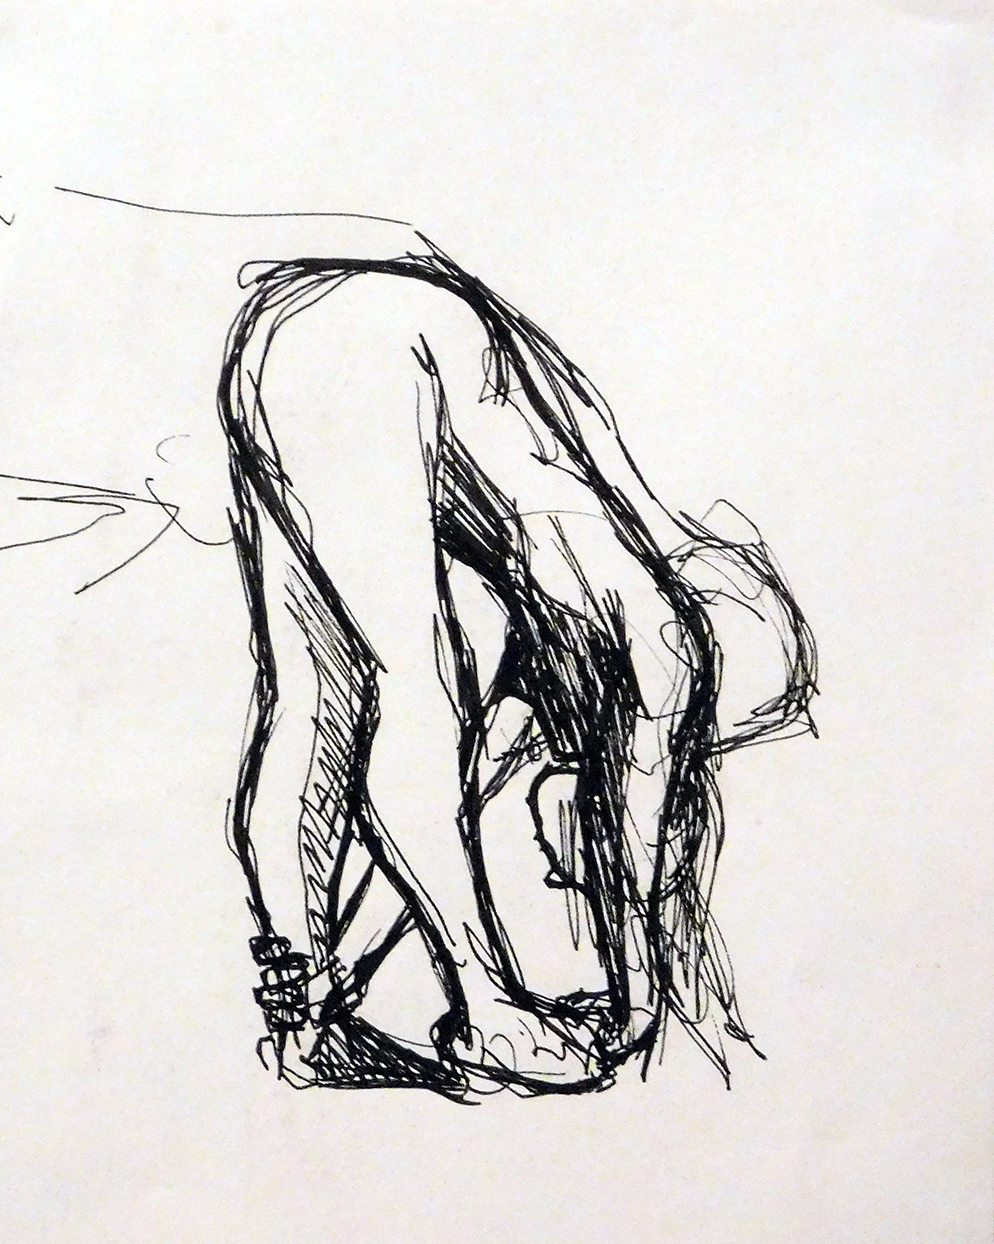 Sketch for Her Movements Not Your Desires